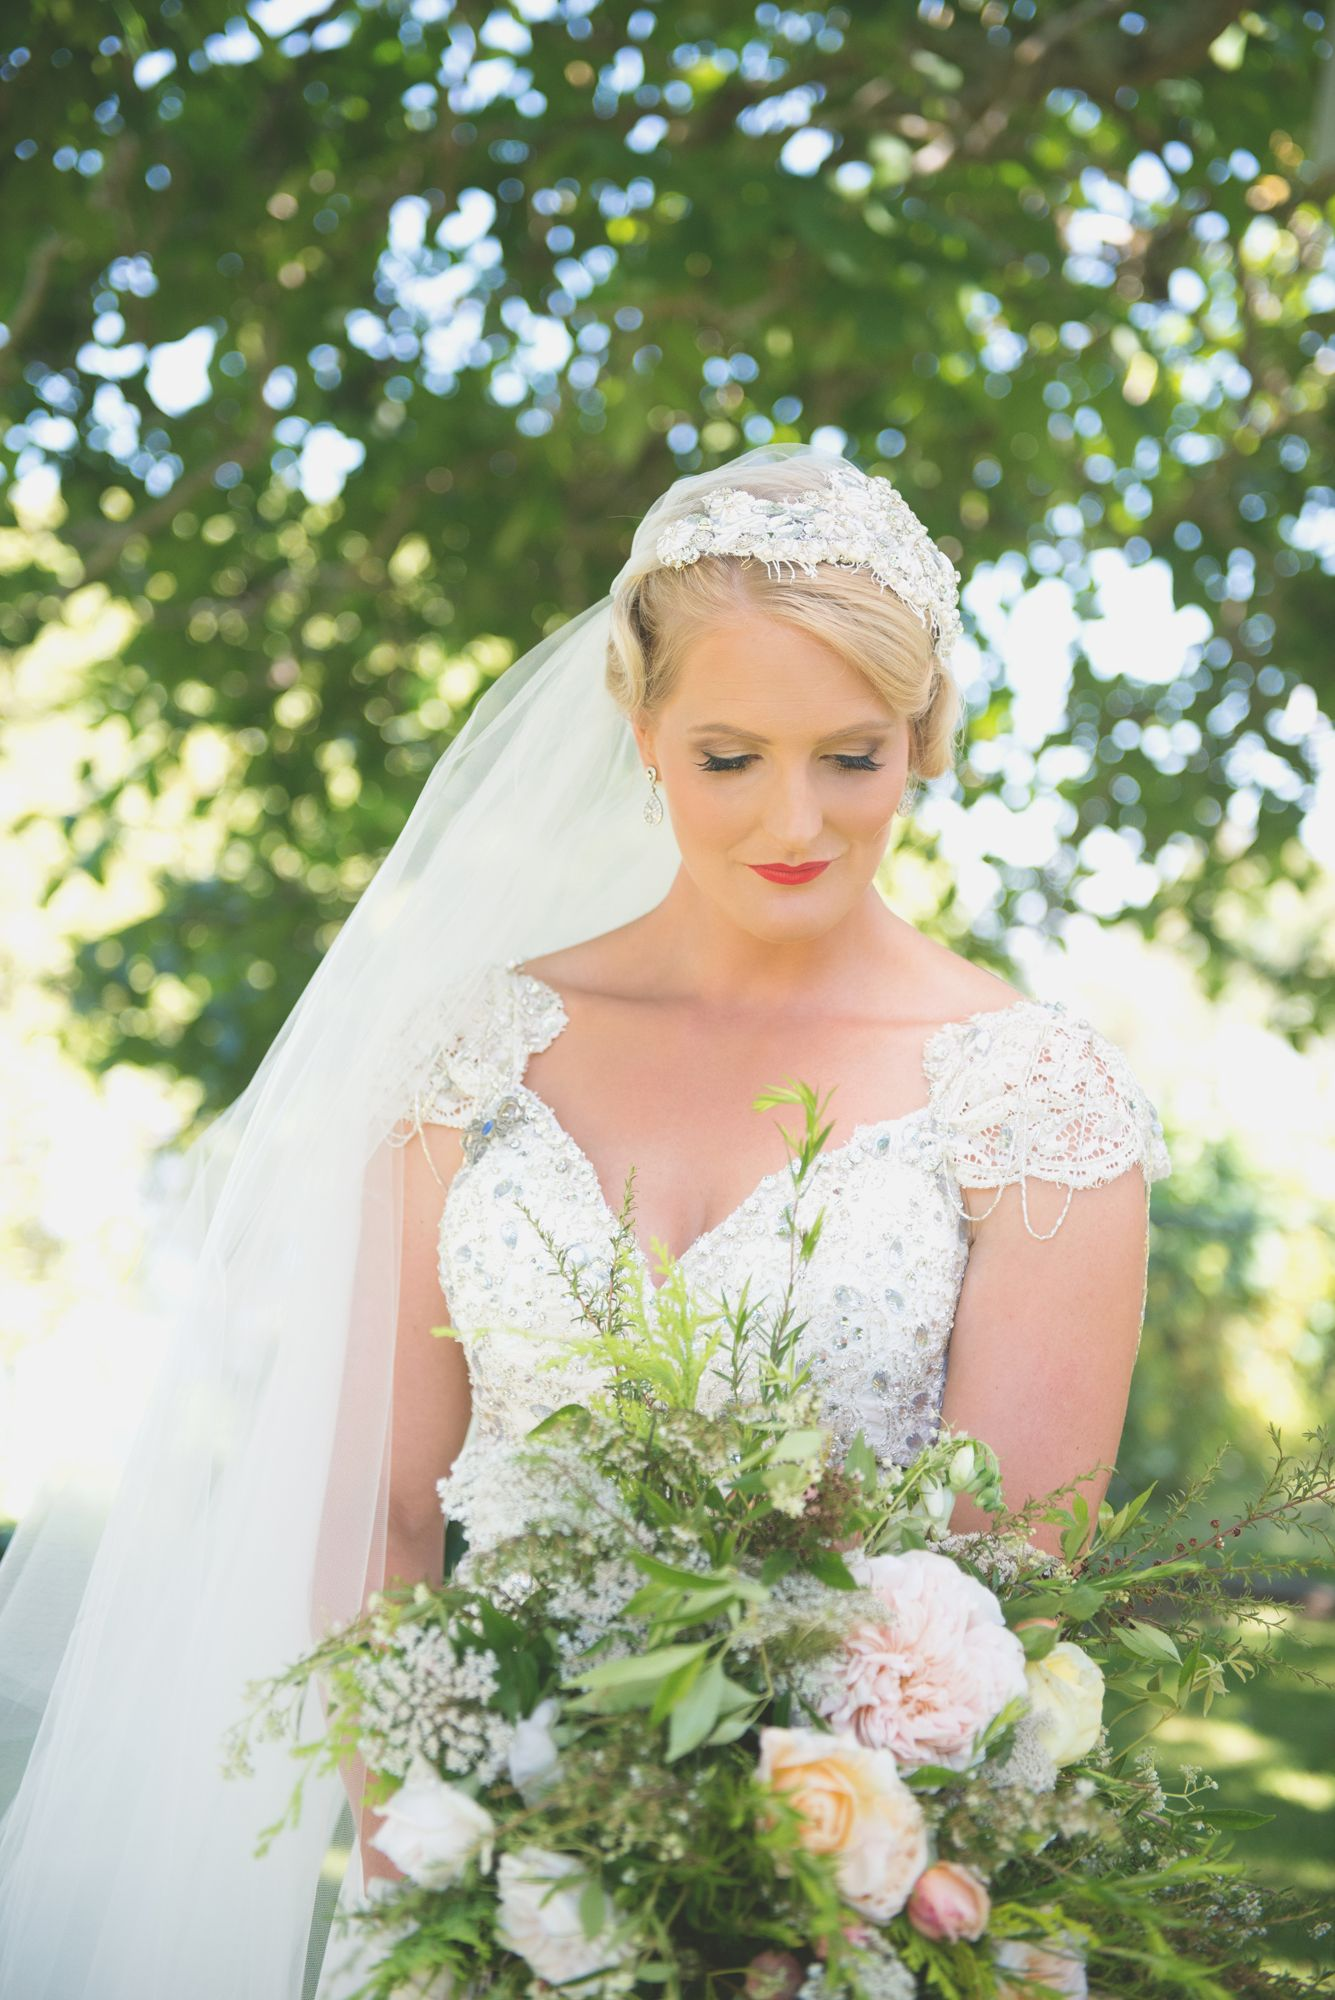 hollie pulled off the vintage bridal look with her own style for